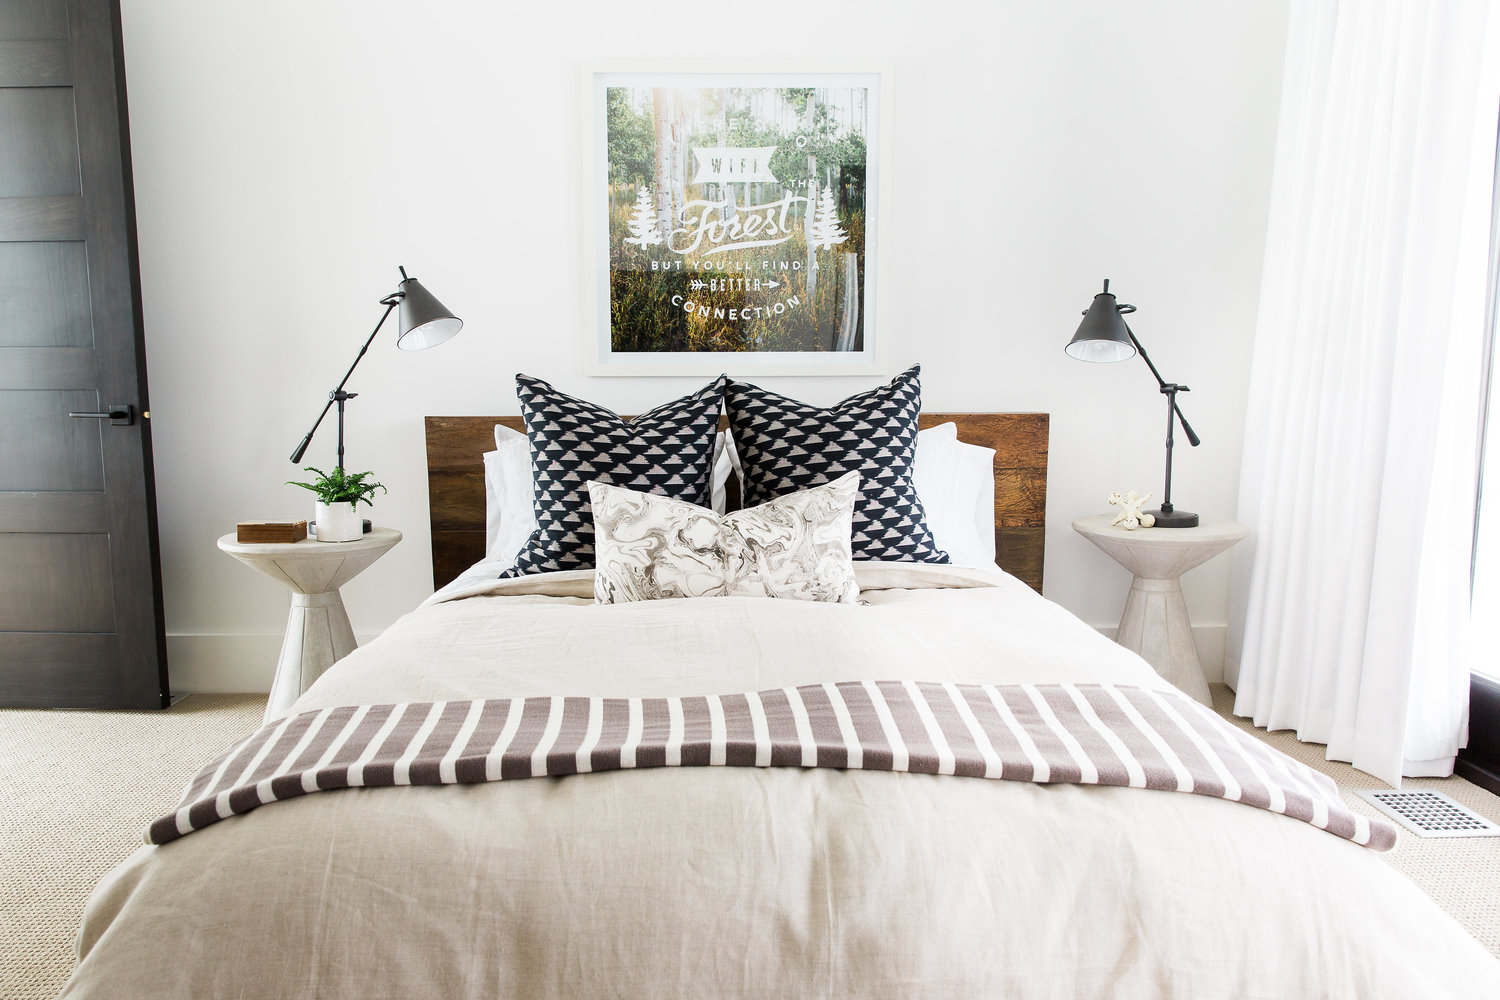 White bed with navy pillow accents